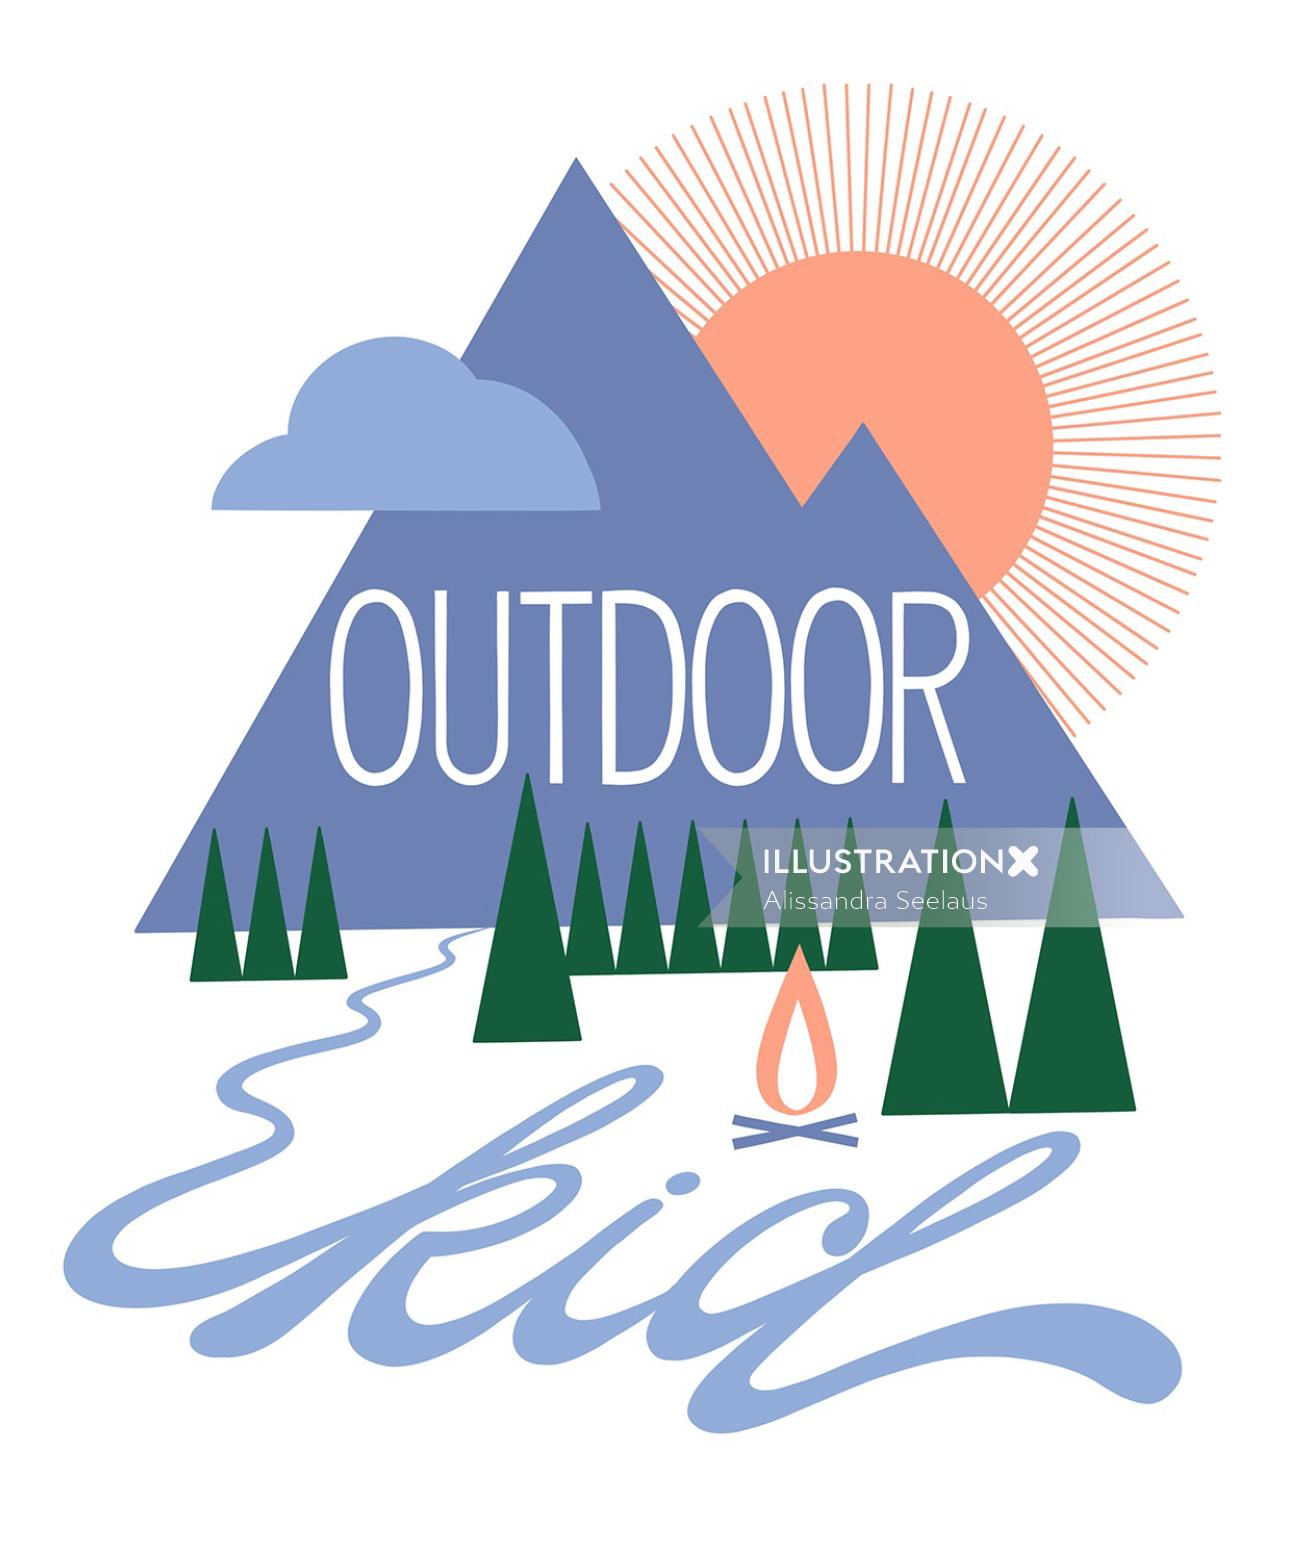 Graphic design of outdoor